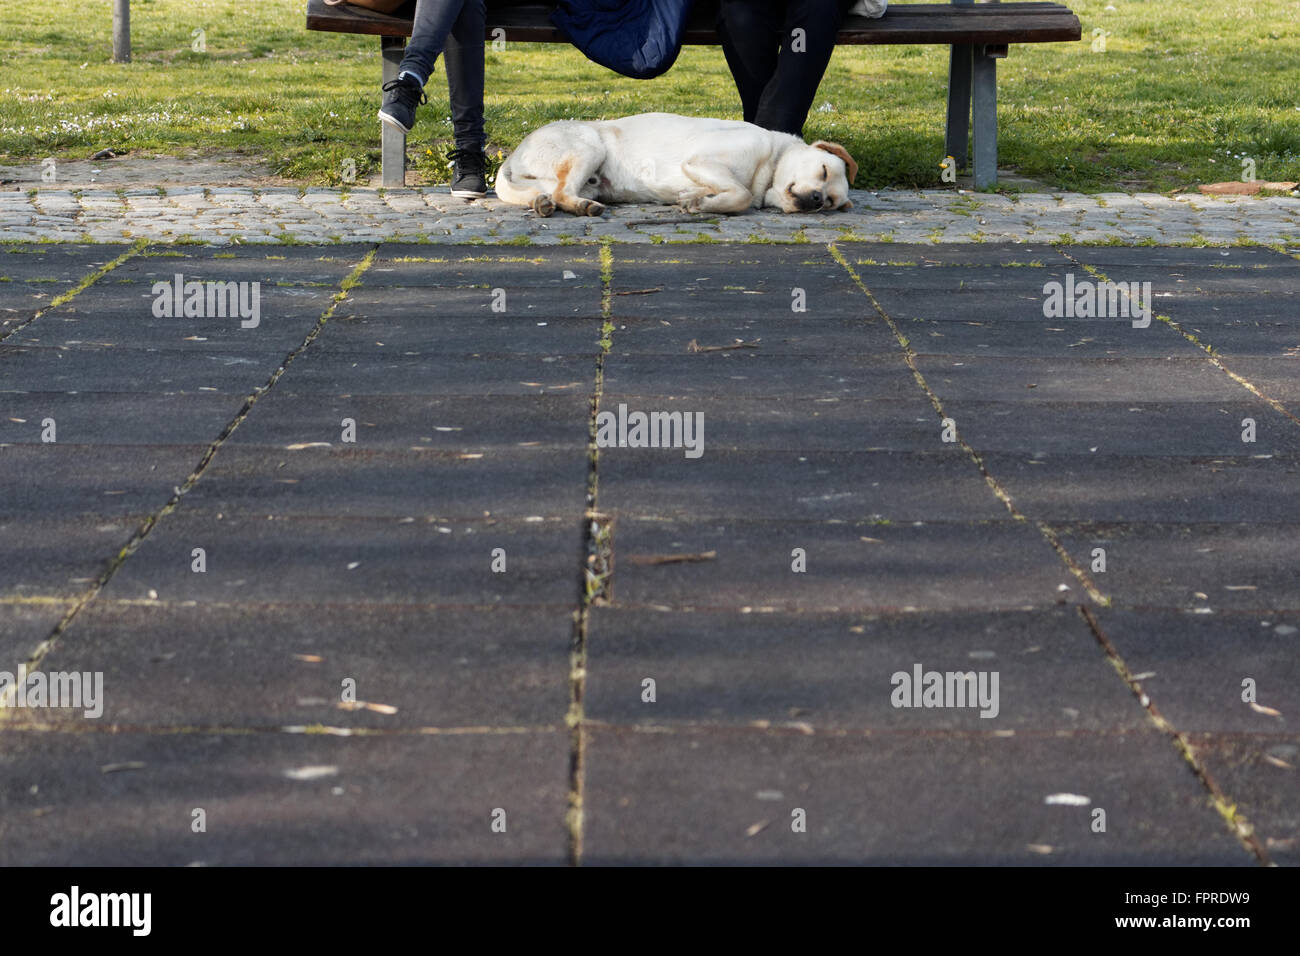 Labrador taking a nap in the park - Stock Image